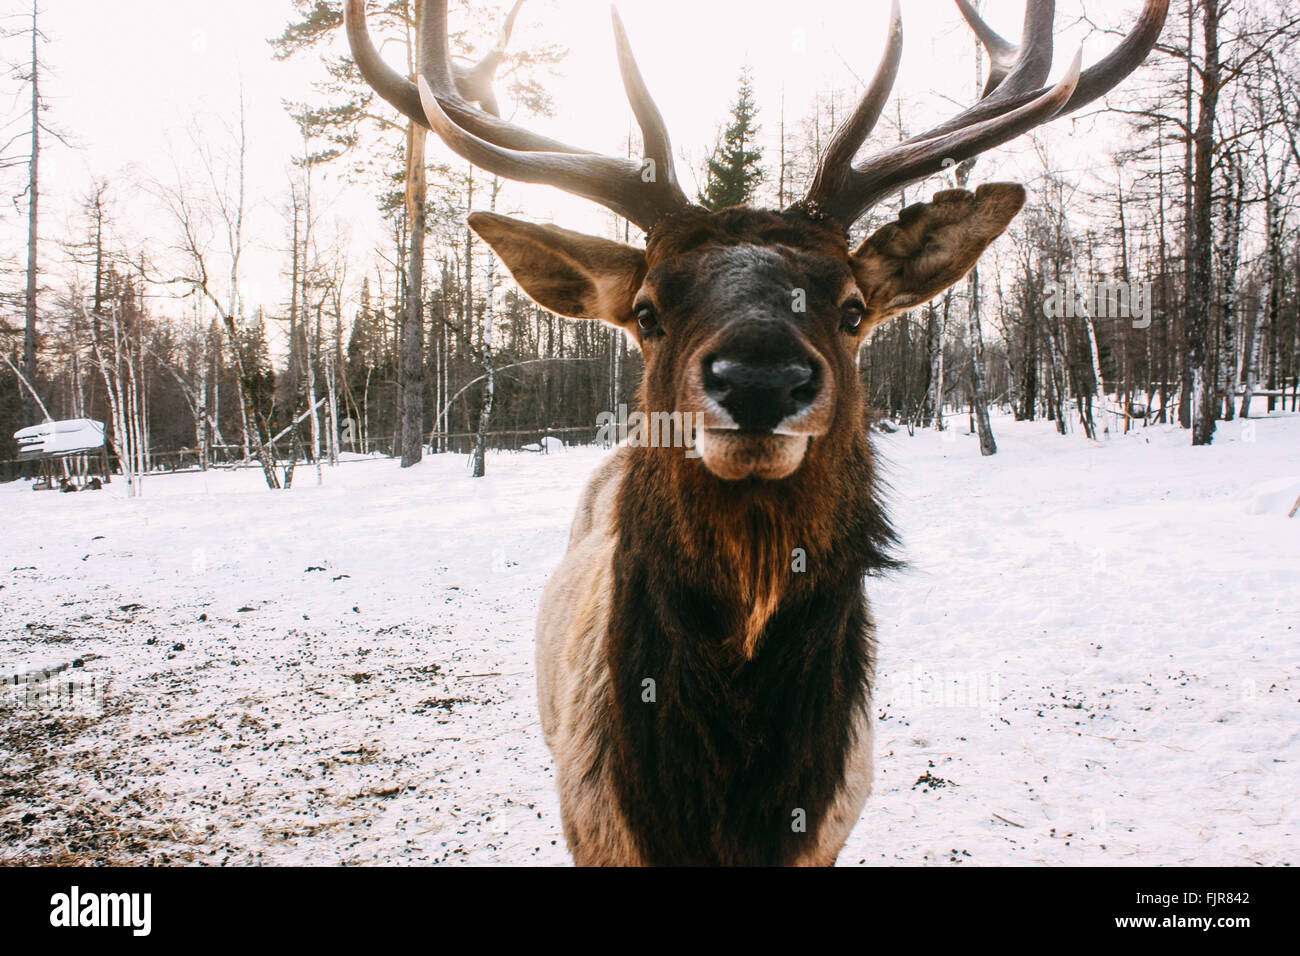 Portrait of Royal red deer buck with antlers - Stock Image